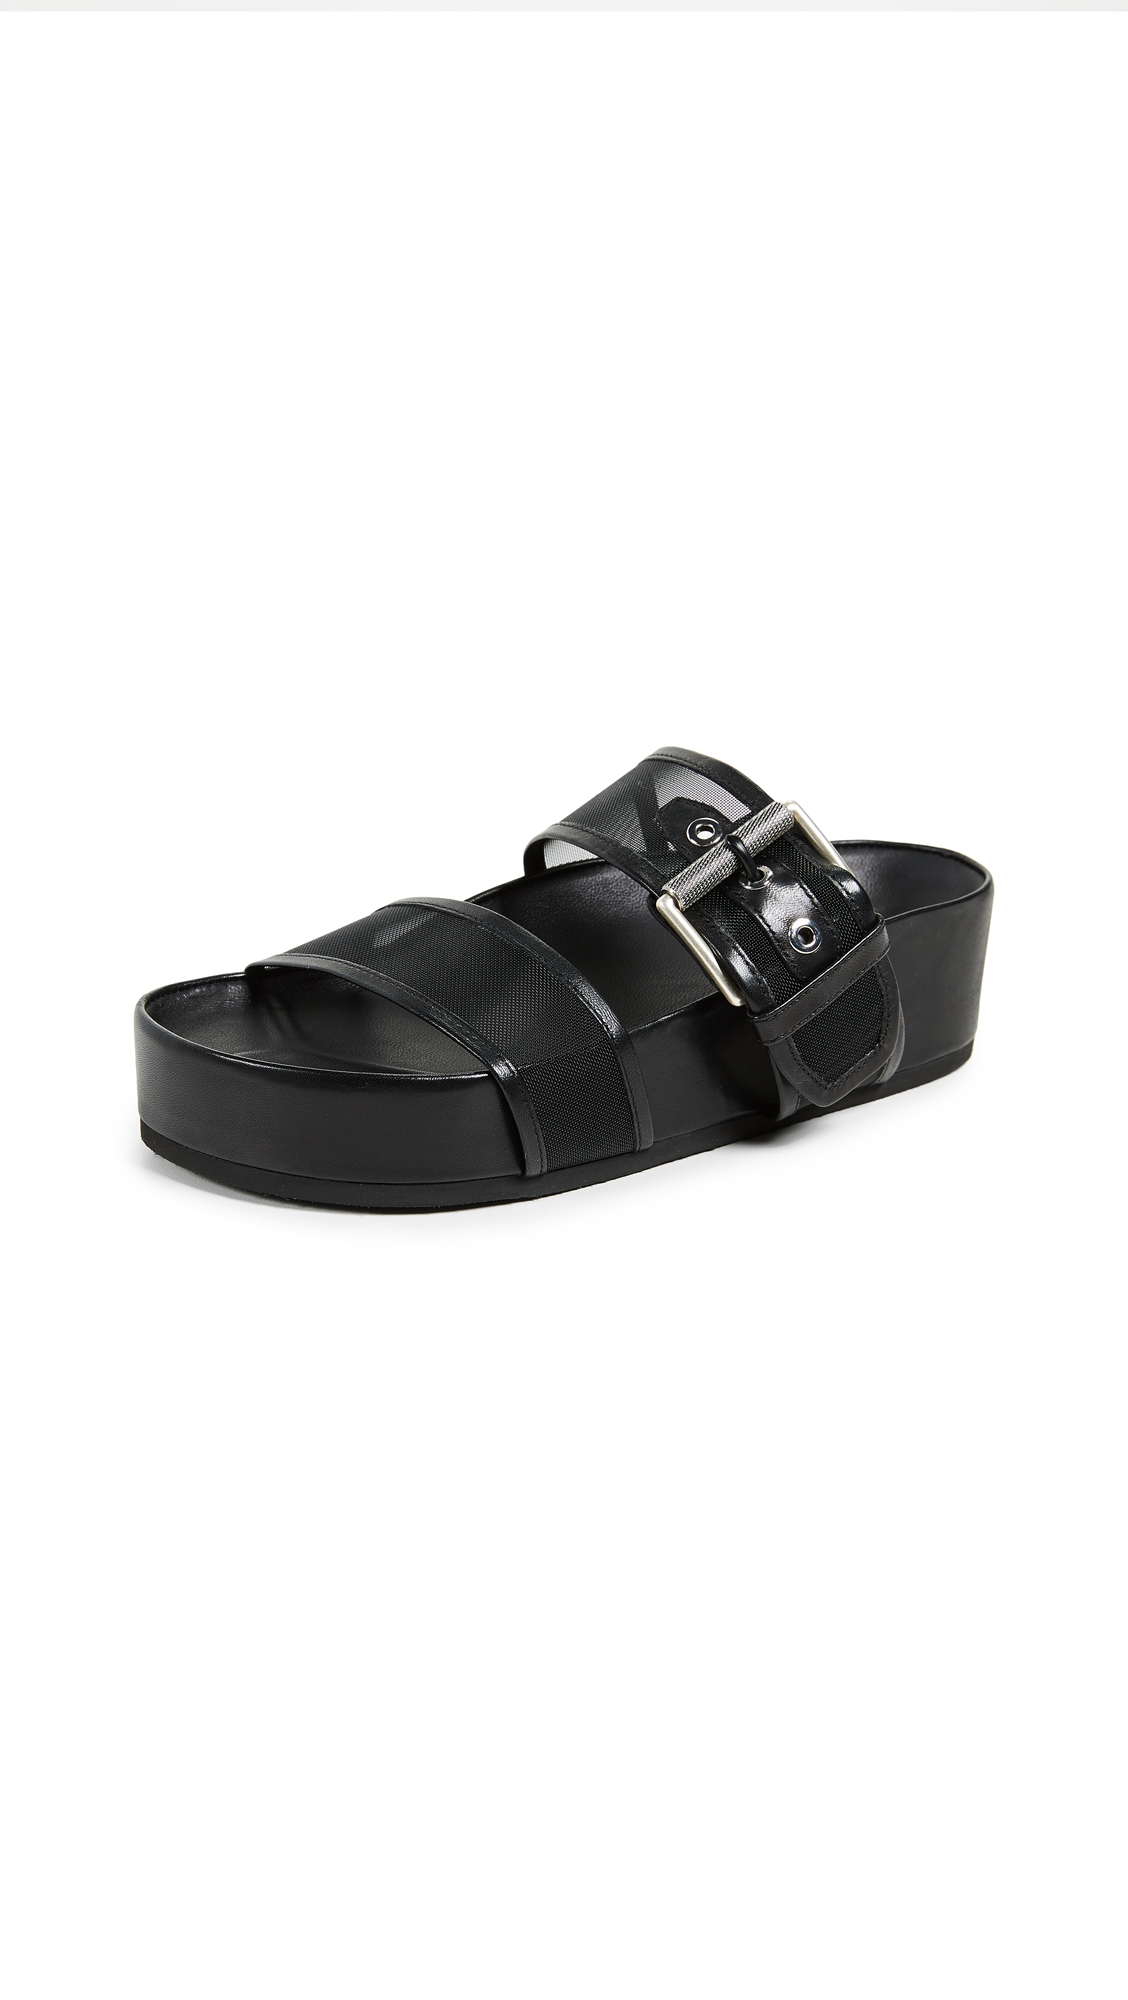 Evin Platform Slide Sandals - Black Size 7